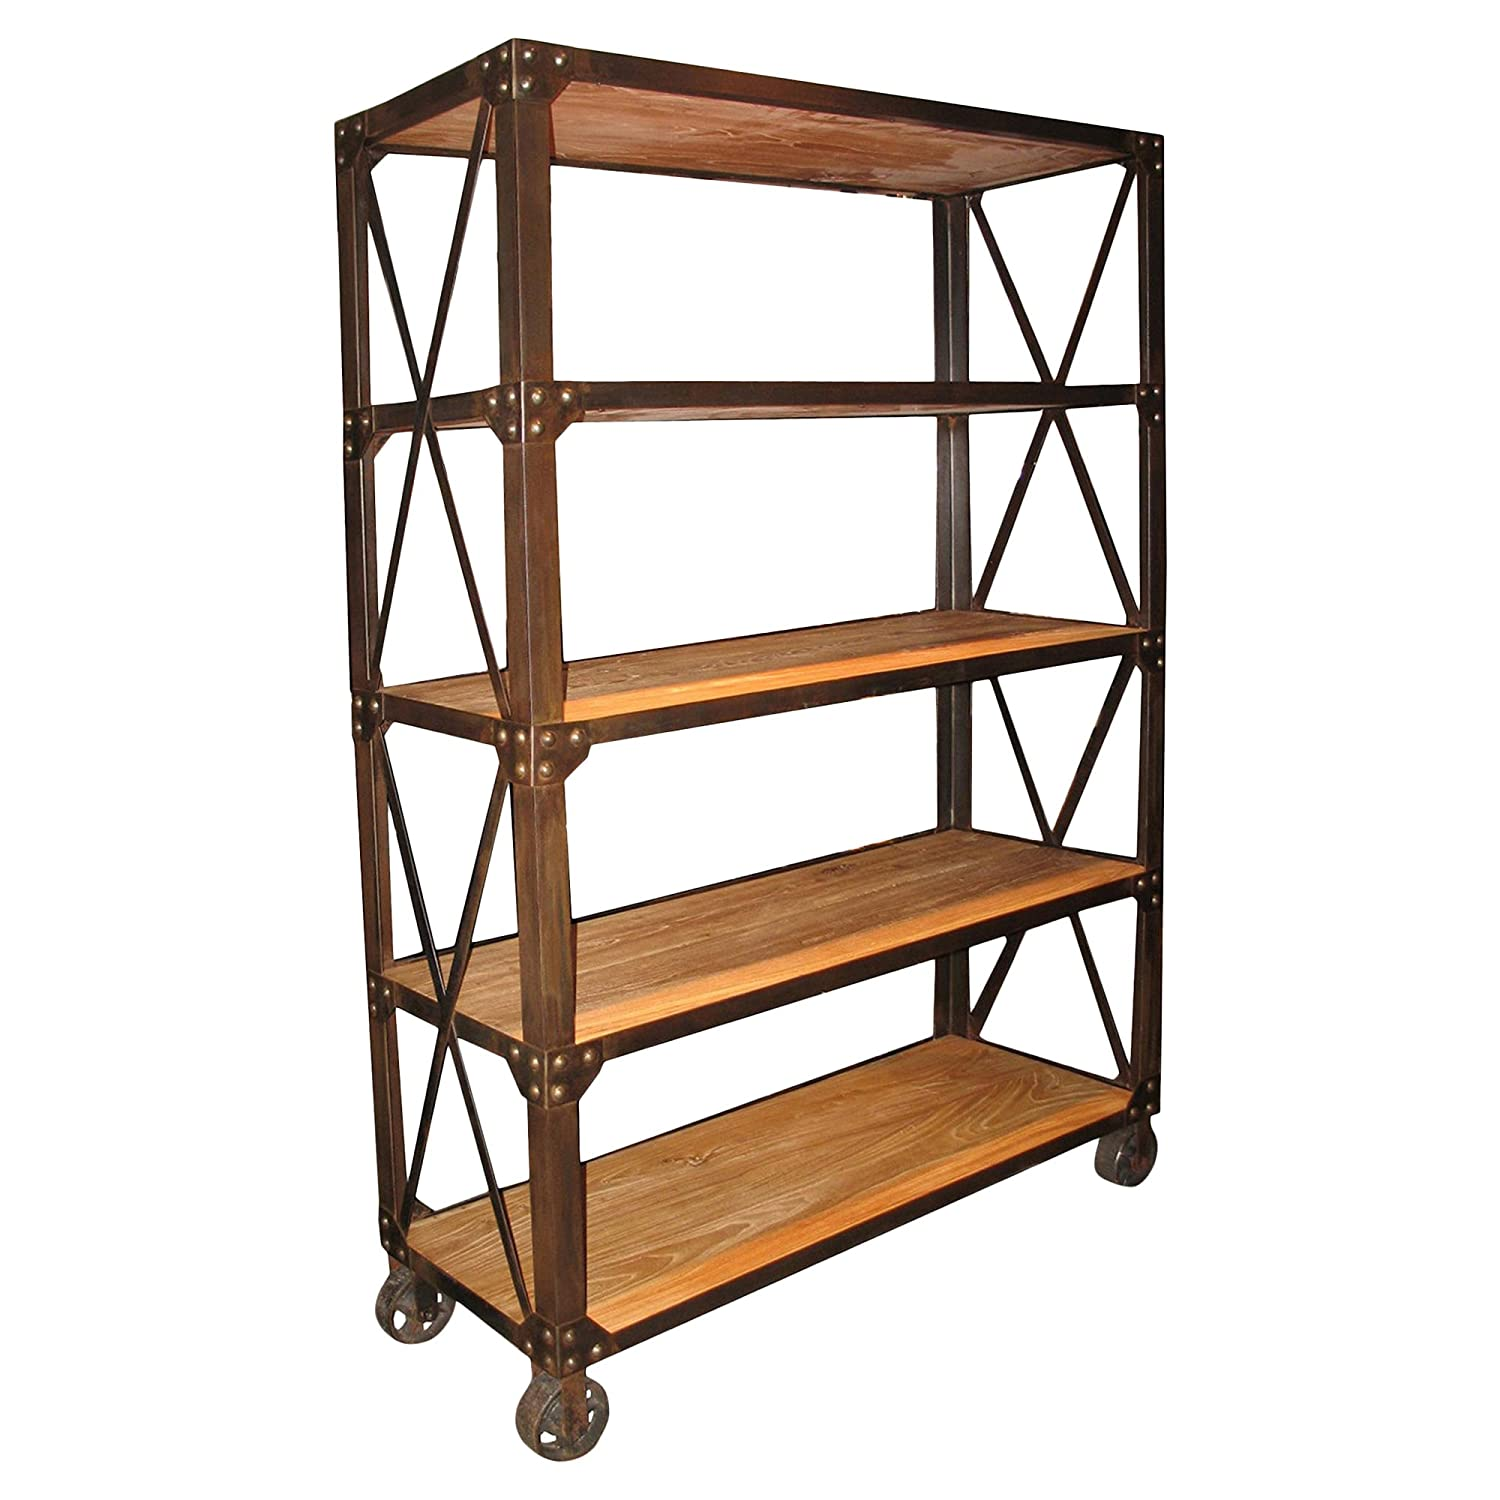 bookcases view ana white bookcase furniture hanging l projects book bookshelves rustic fence row diy larger shelves